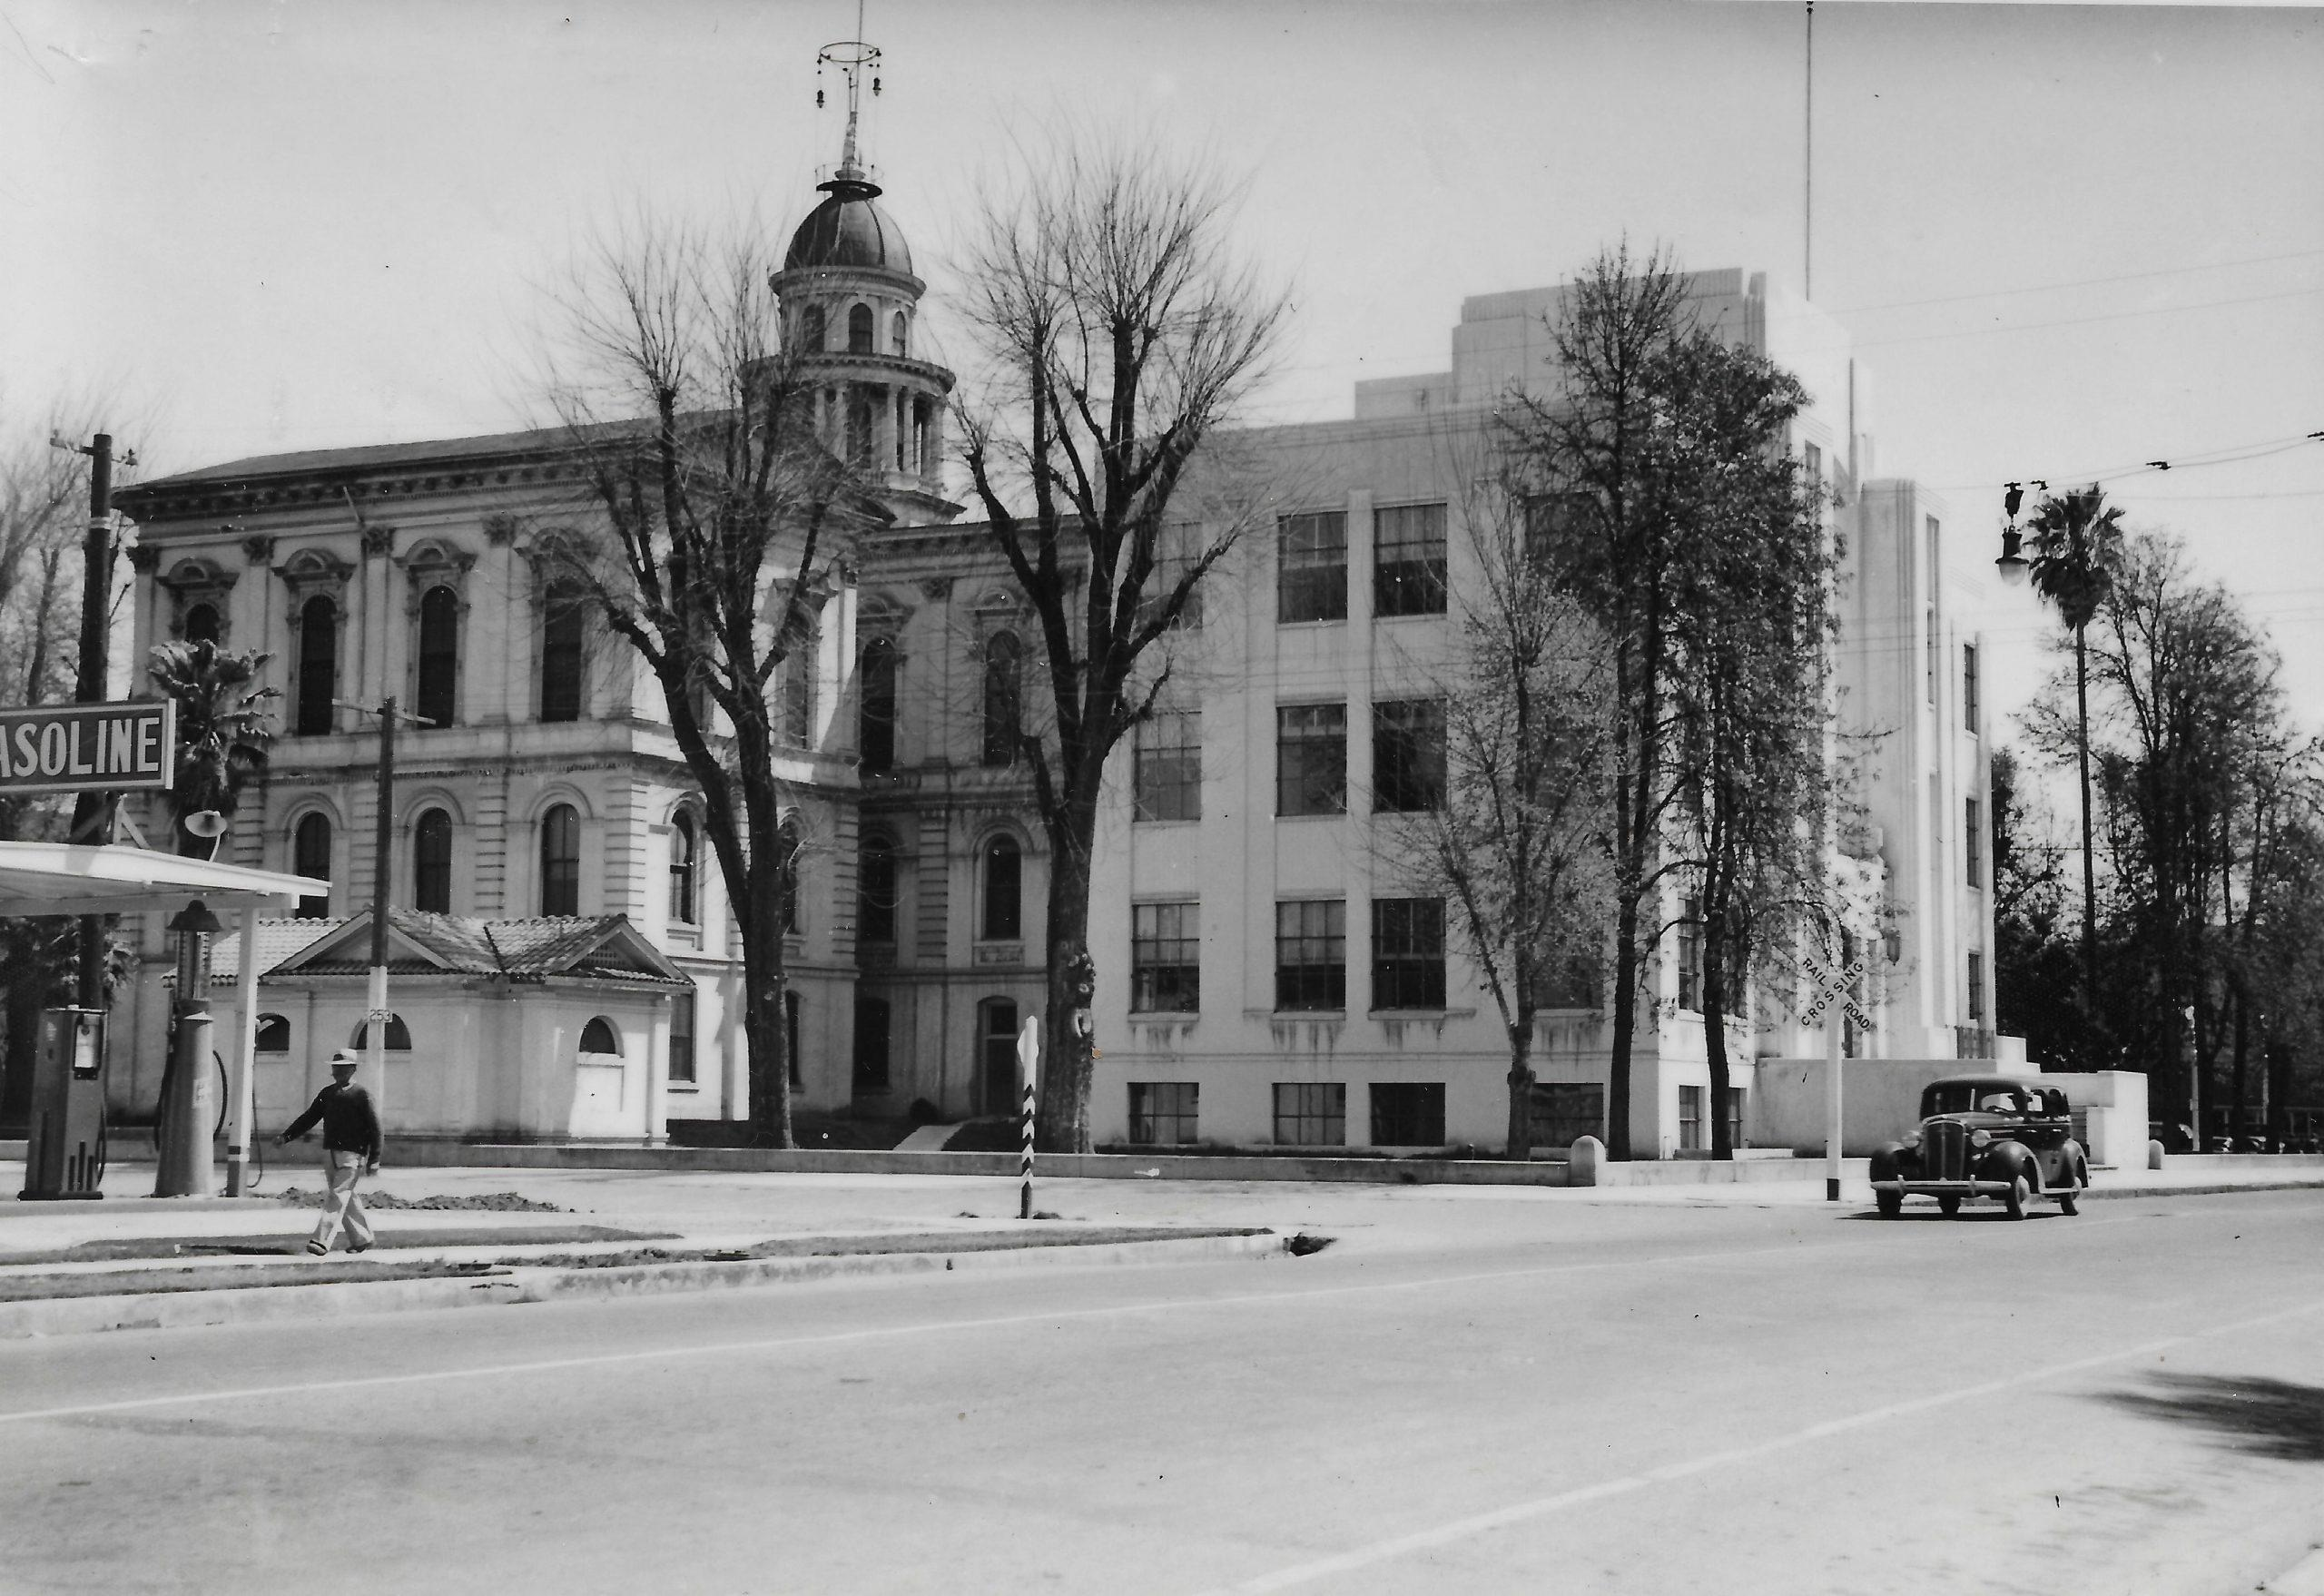 Image of original building with Tulare County Courthouse